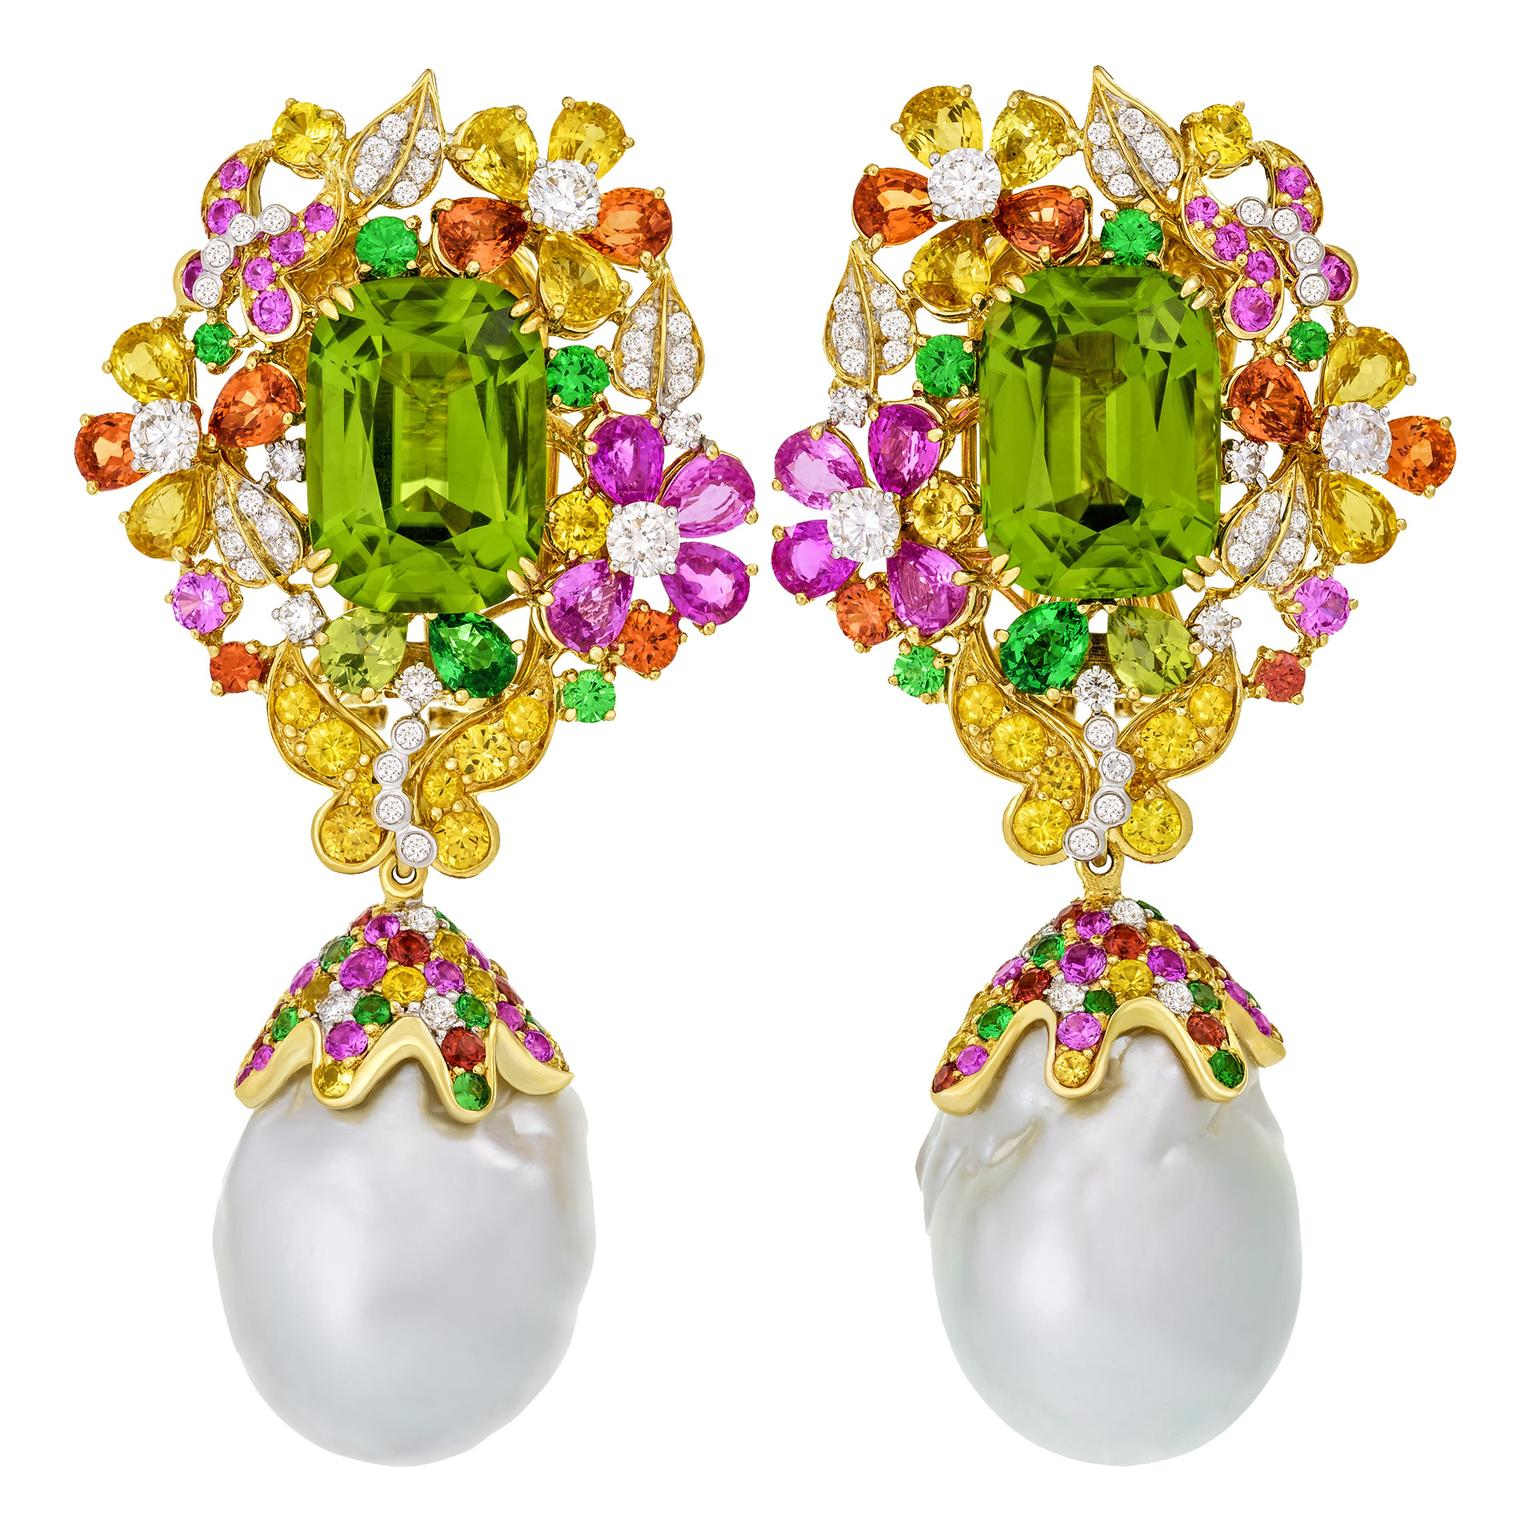 Margot McKinney Butterfly Garden peridot and baroque pearl earrings